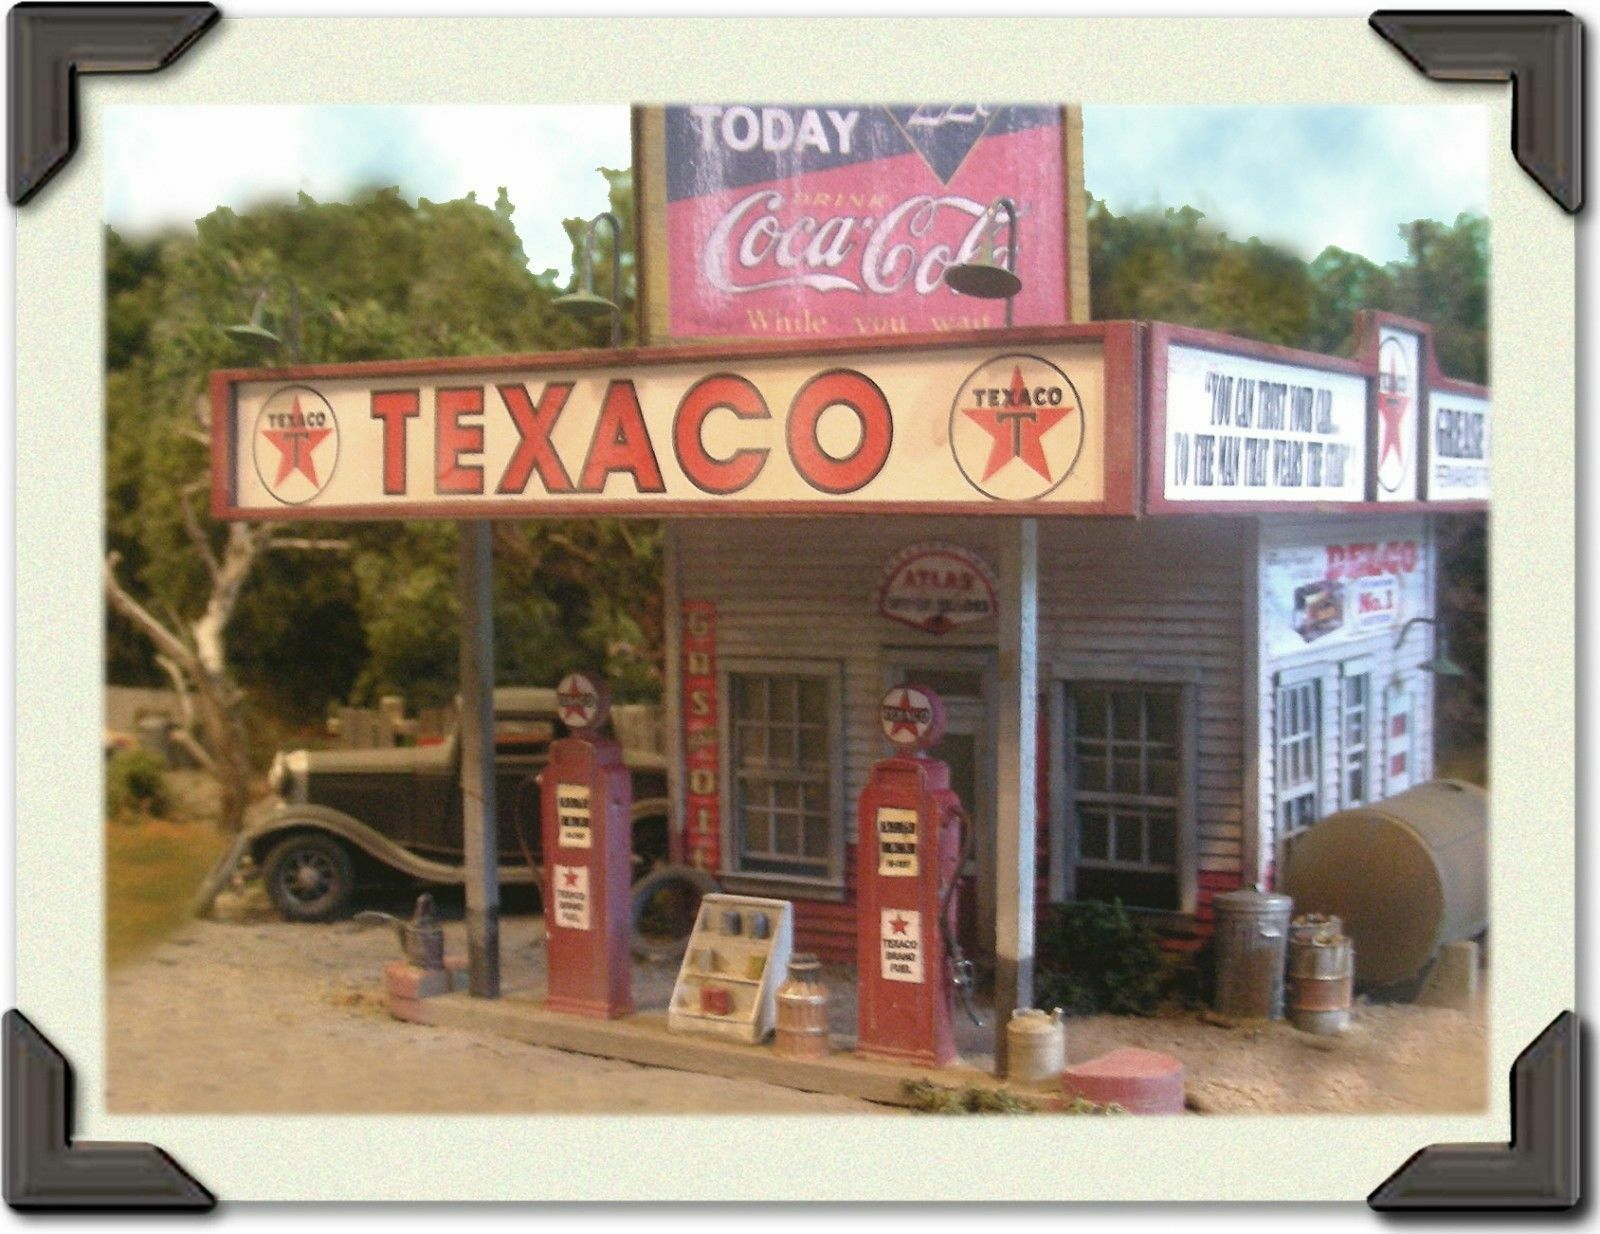 BAR MILLS BUILDINGS 104 O Bud Smiley's Texaco Station Modelll Railroading Kit